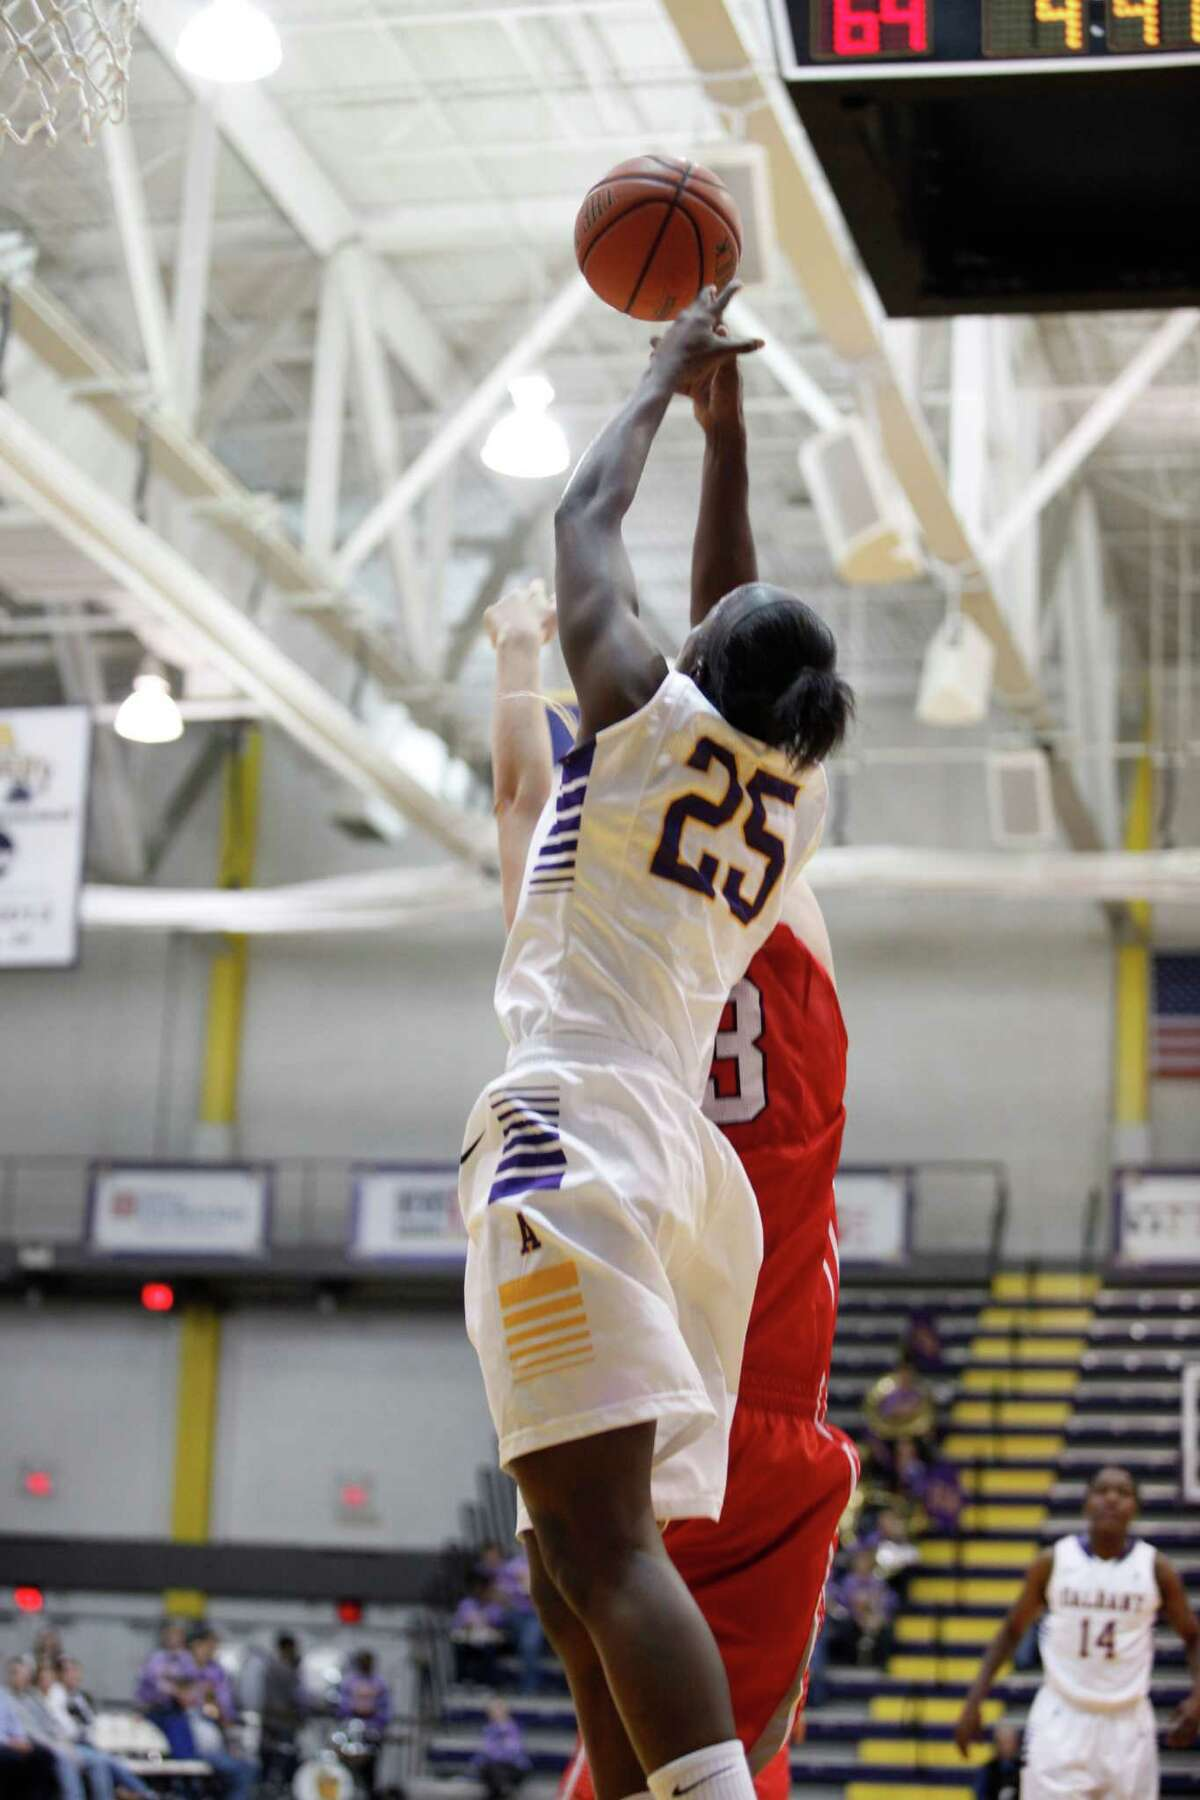 UAlbanyOs Shereesha Richards fights for a rebound during the womenOs college basketball game against Marist at the SEFCU Arena on Thursday, Nov. 14, 2013 in Albany, N.Y. (Dan Little / Special to the Times Union)